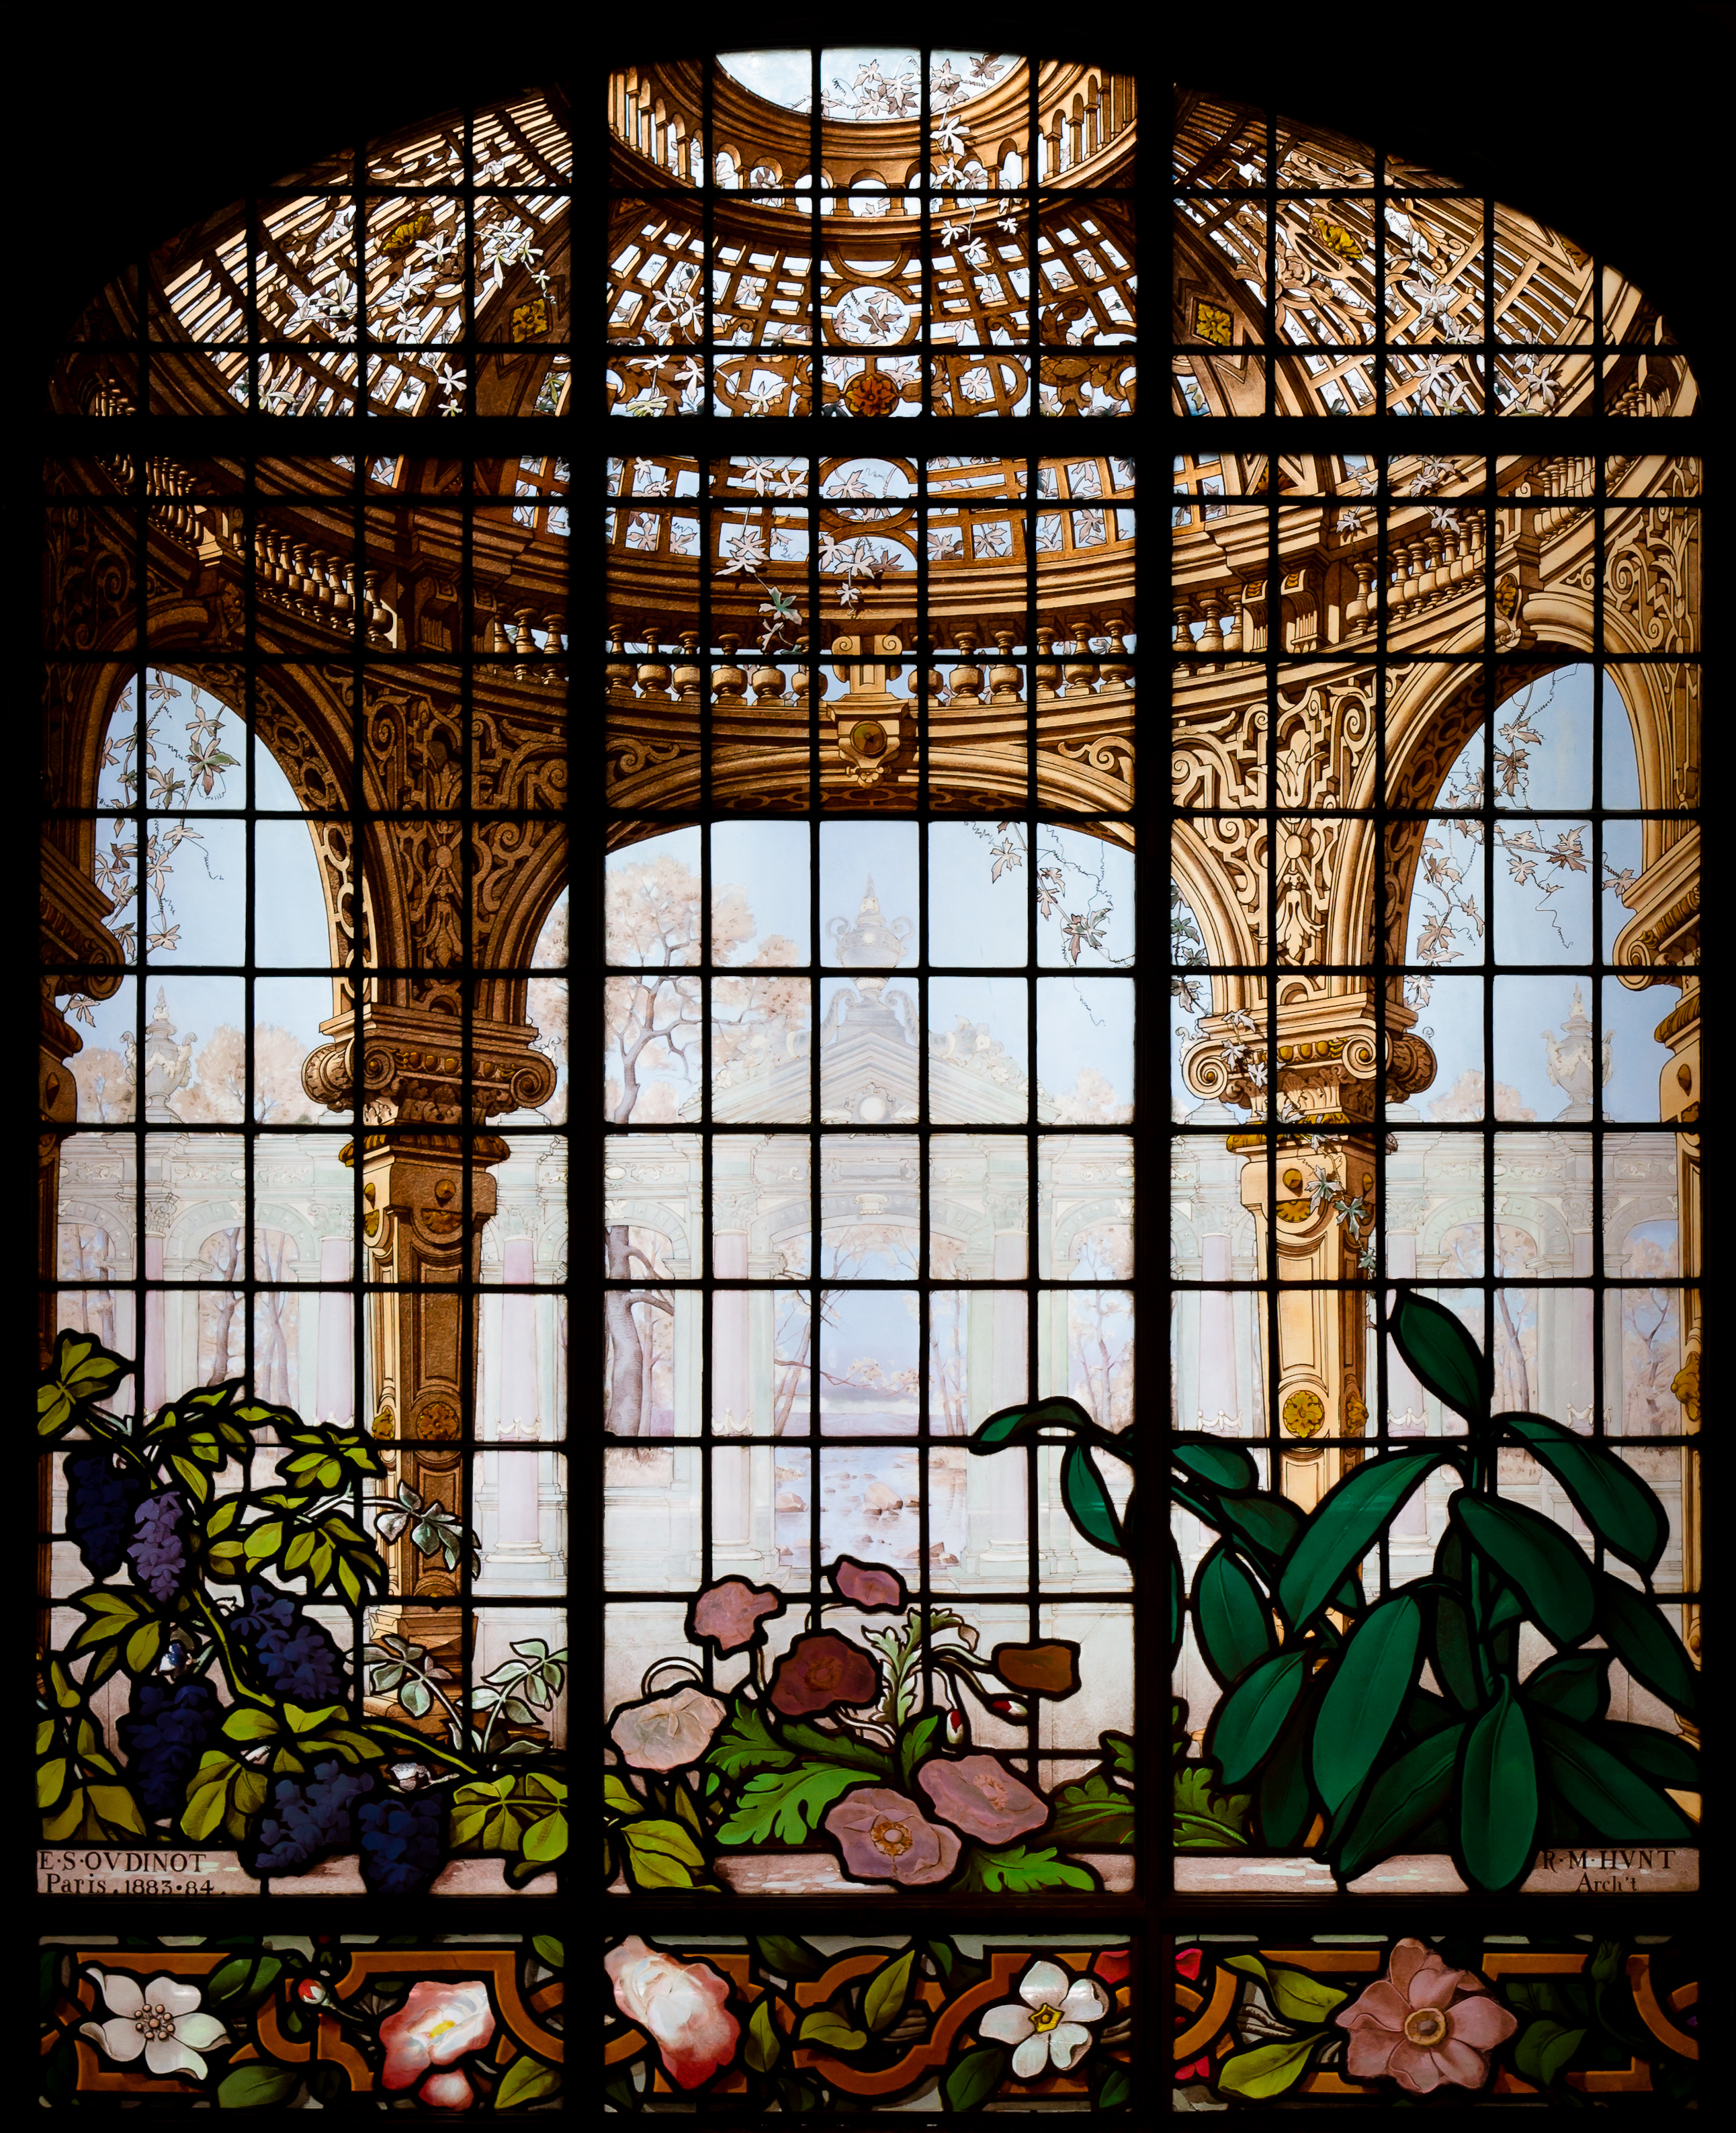 Superieur File:Henry G. Marquand House Conservatory Stained Glass Window